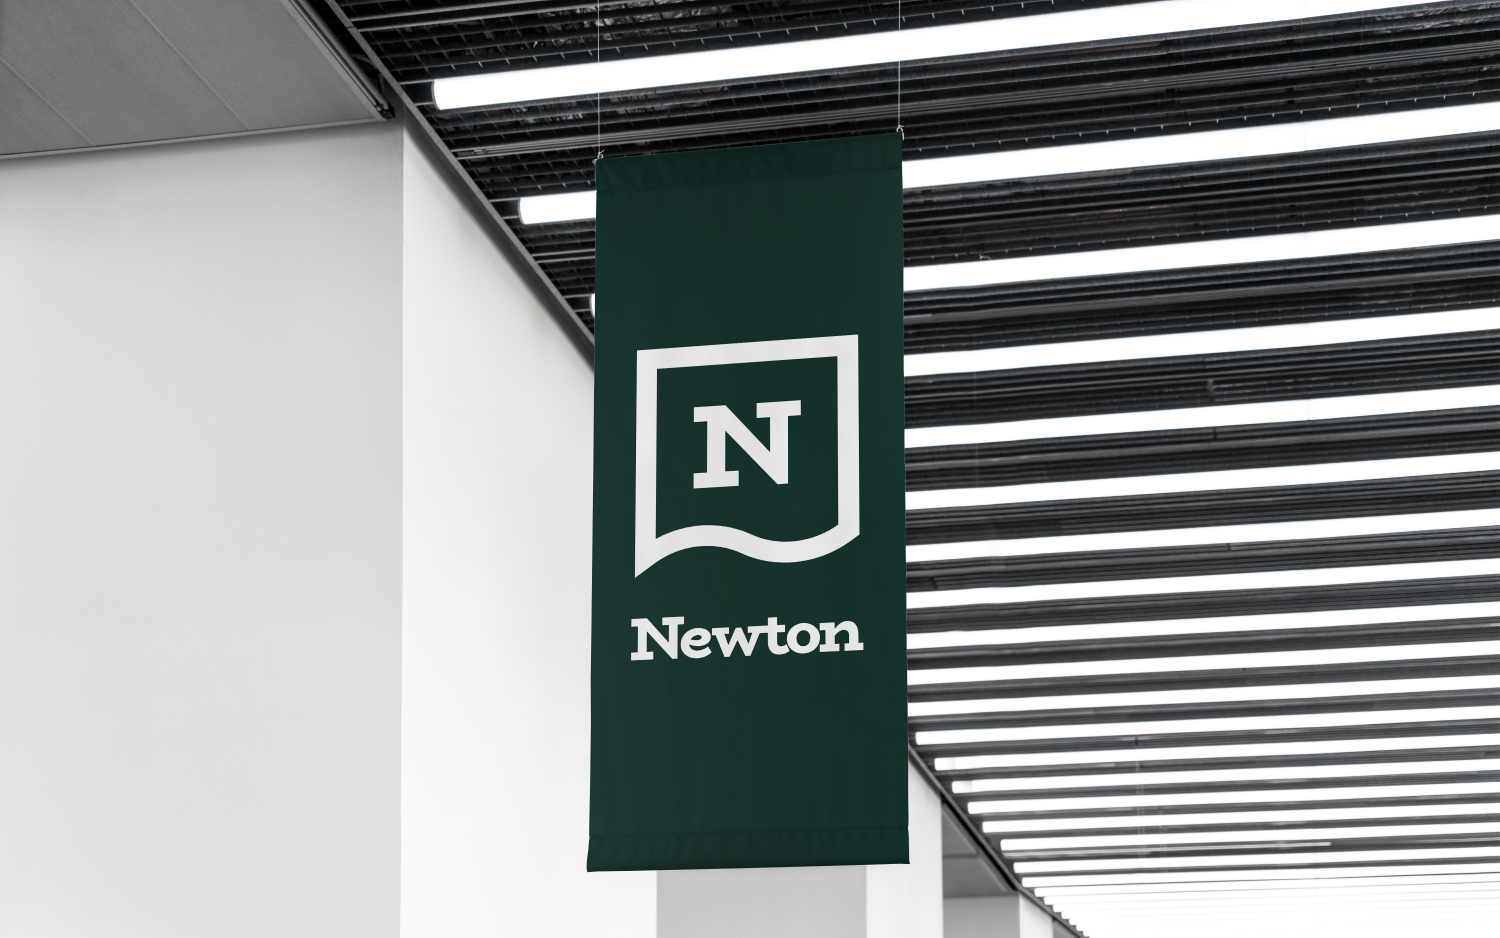 Newton branding logo design on a banner